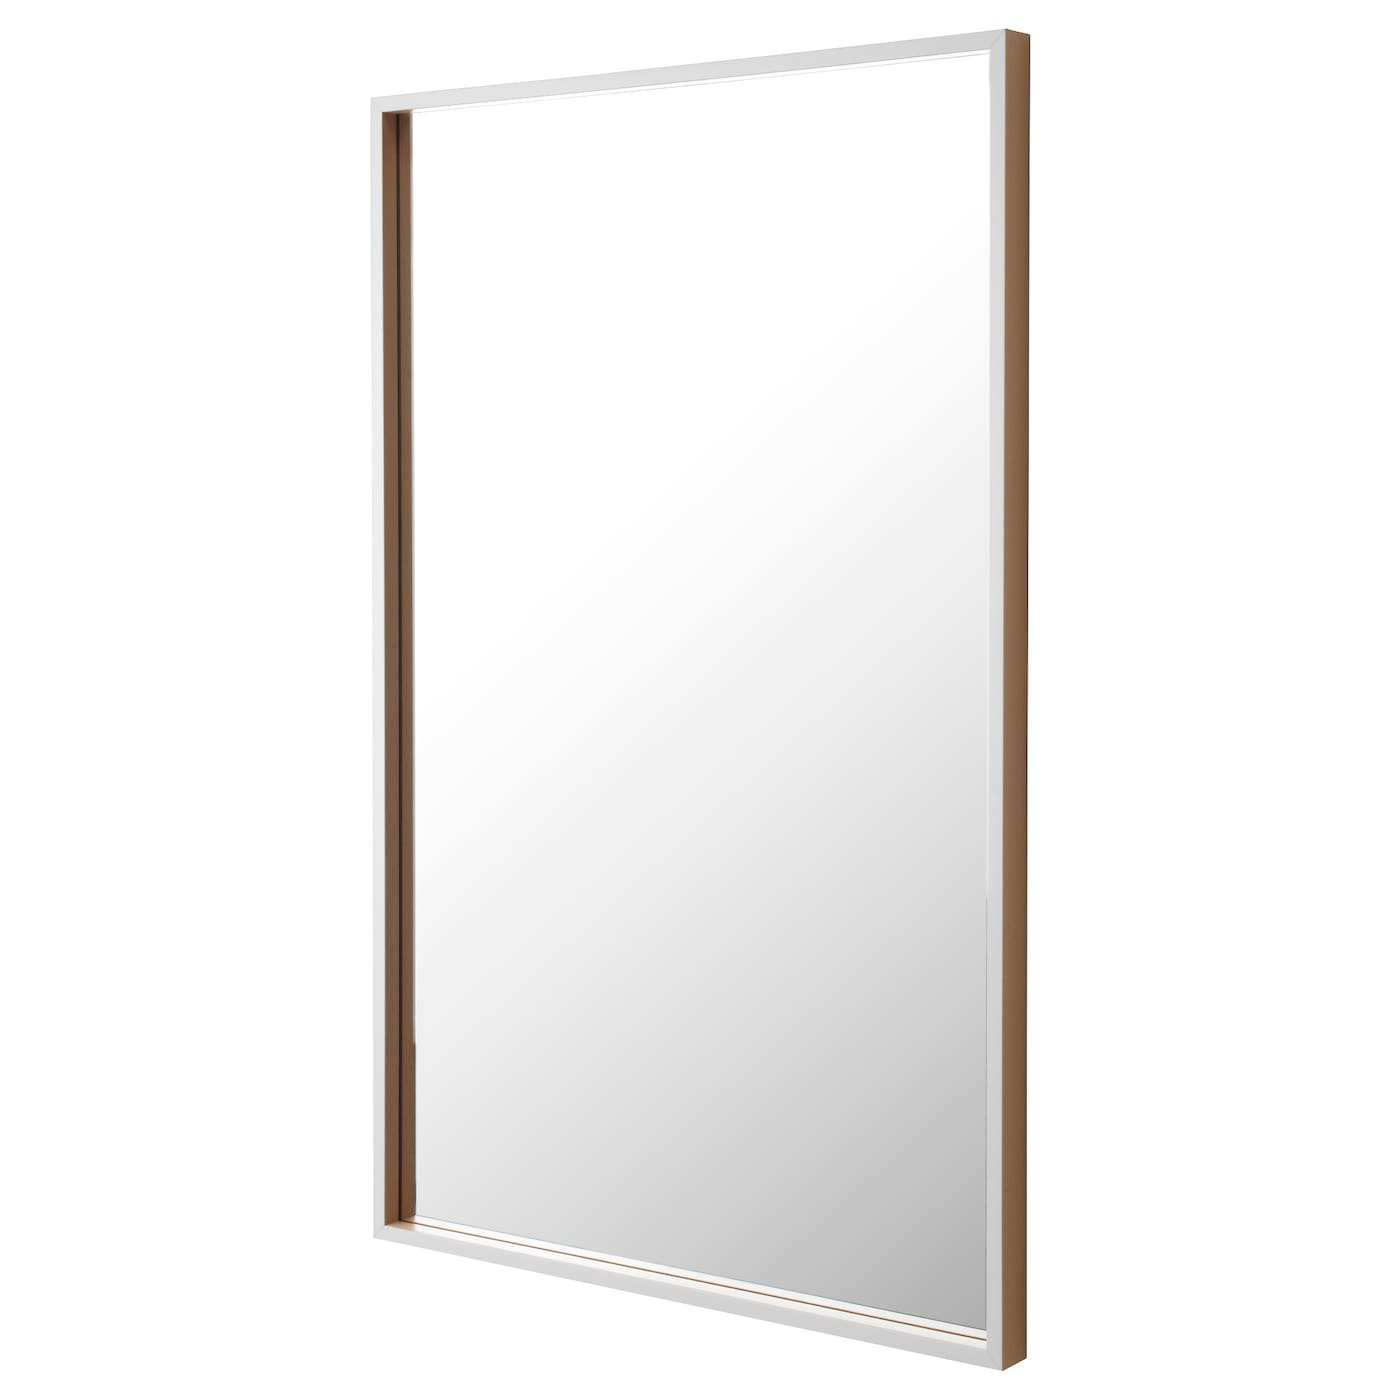 Wall mirrors wall mirrors with shelves ikea for Miroir 50x80